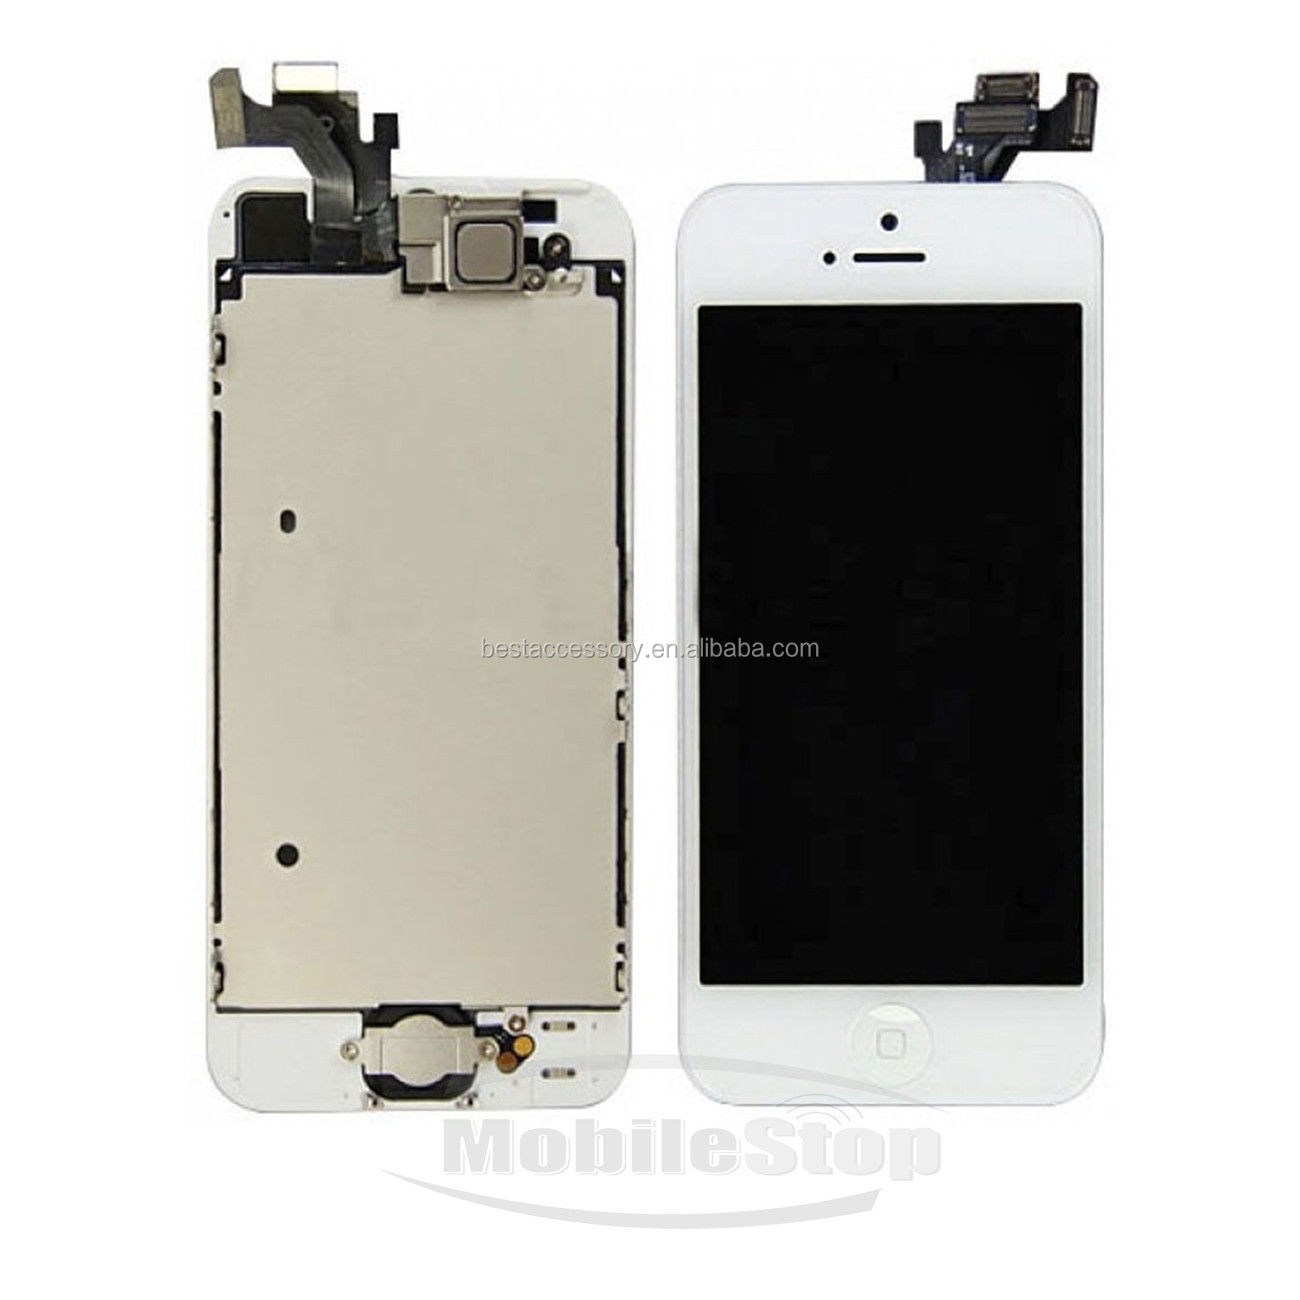 White LCD Touch Screen Display Digitizer FULL Replacement for iPhone 5 + Camera